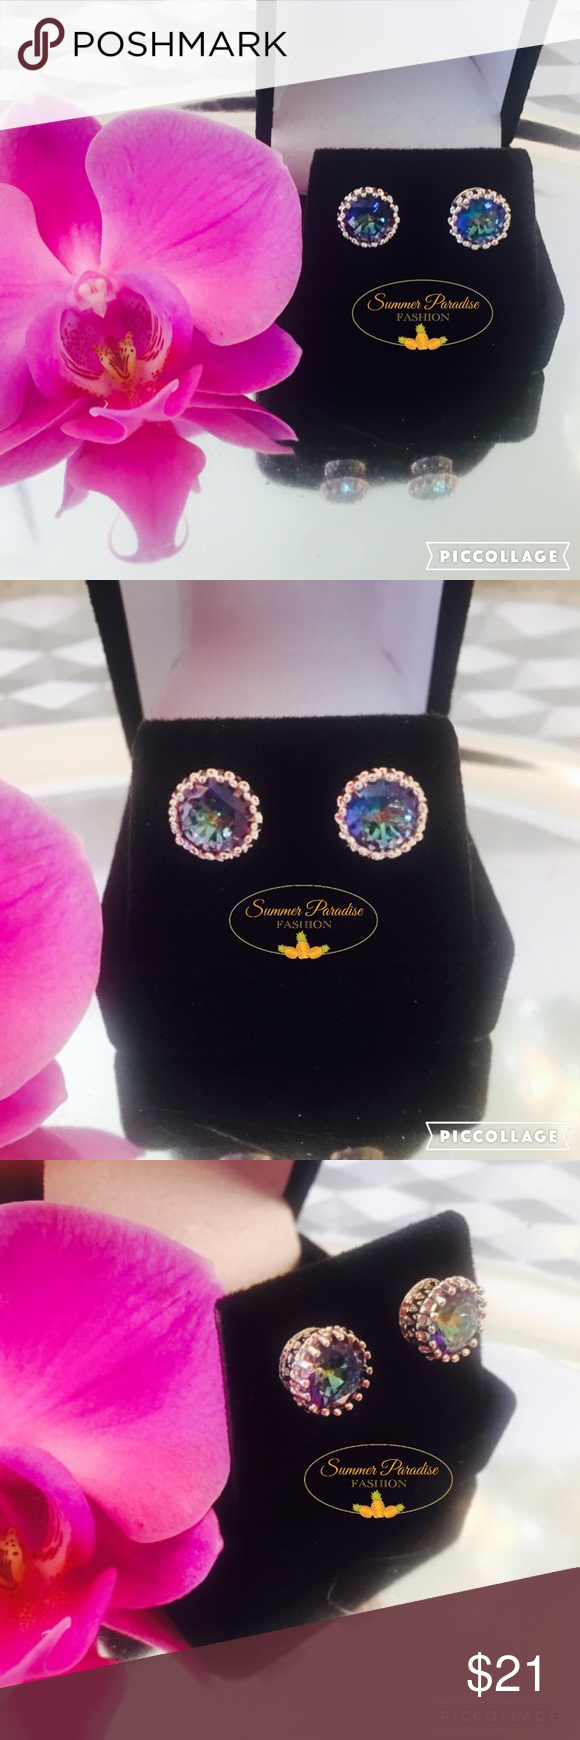 💠NWT 💕18k White Gold Mystic Topaz Earrings💕 💠BUY 2 get 1 FREE item $10 or under!💠.           8 mm rainbow mystic topaz stud earrings in crown 18k white gold setting. Even more brilliant than pics can show! Vibrant hues of blue, green & purple depending on sunlight💕.         💠Bundle to Save 15% $$$.                                           💠FREE GIFT with purchases over $10        TAGS: Mystic Topaz earrings, rainbow topaz, topaz stud earrings, stud earrings Summer Paradise Jewelry…